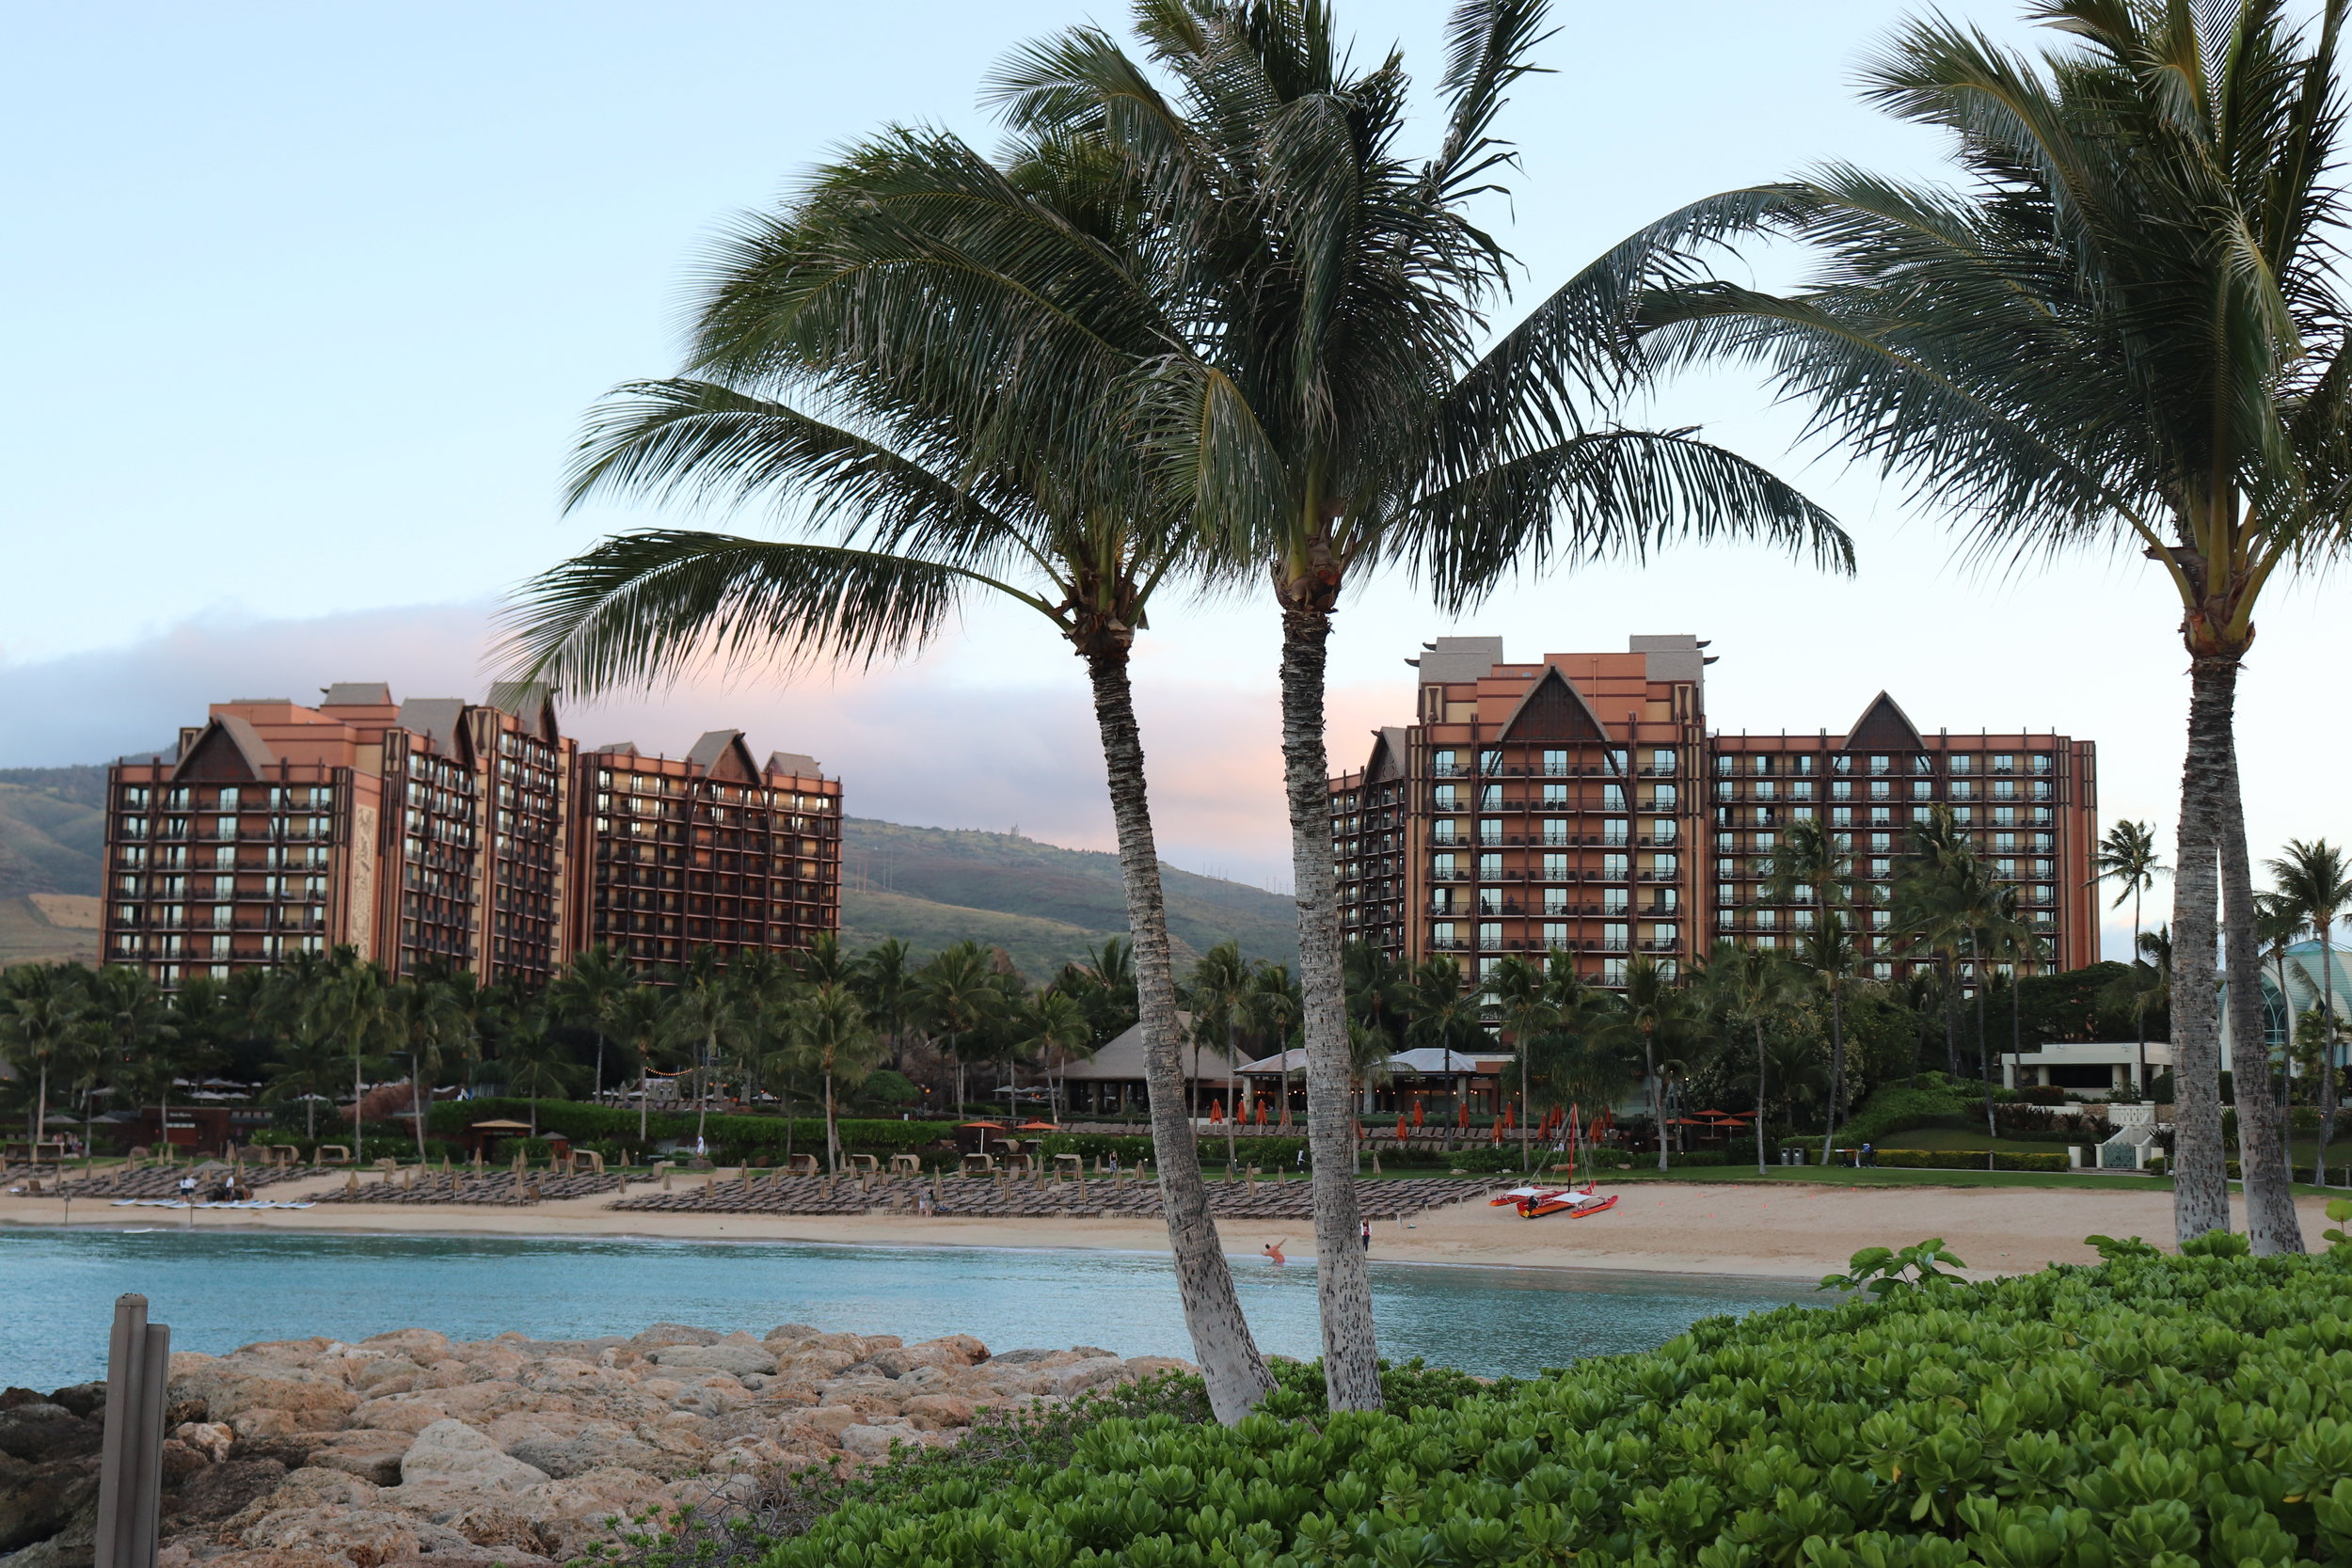 We took this picture from the water side of the resort.